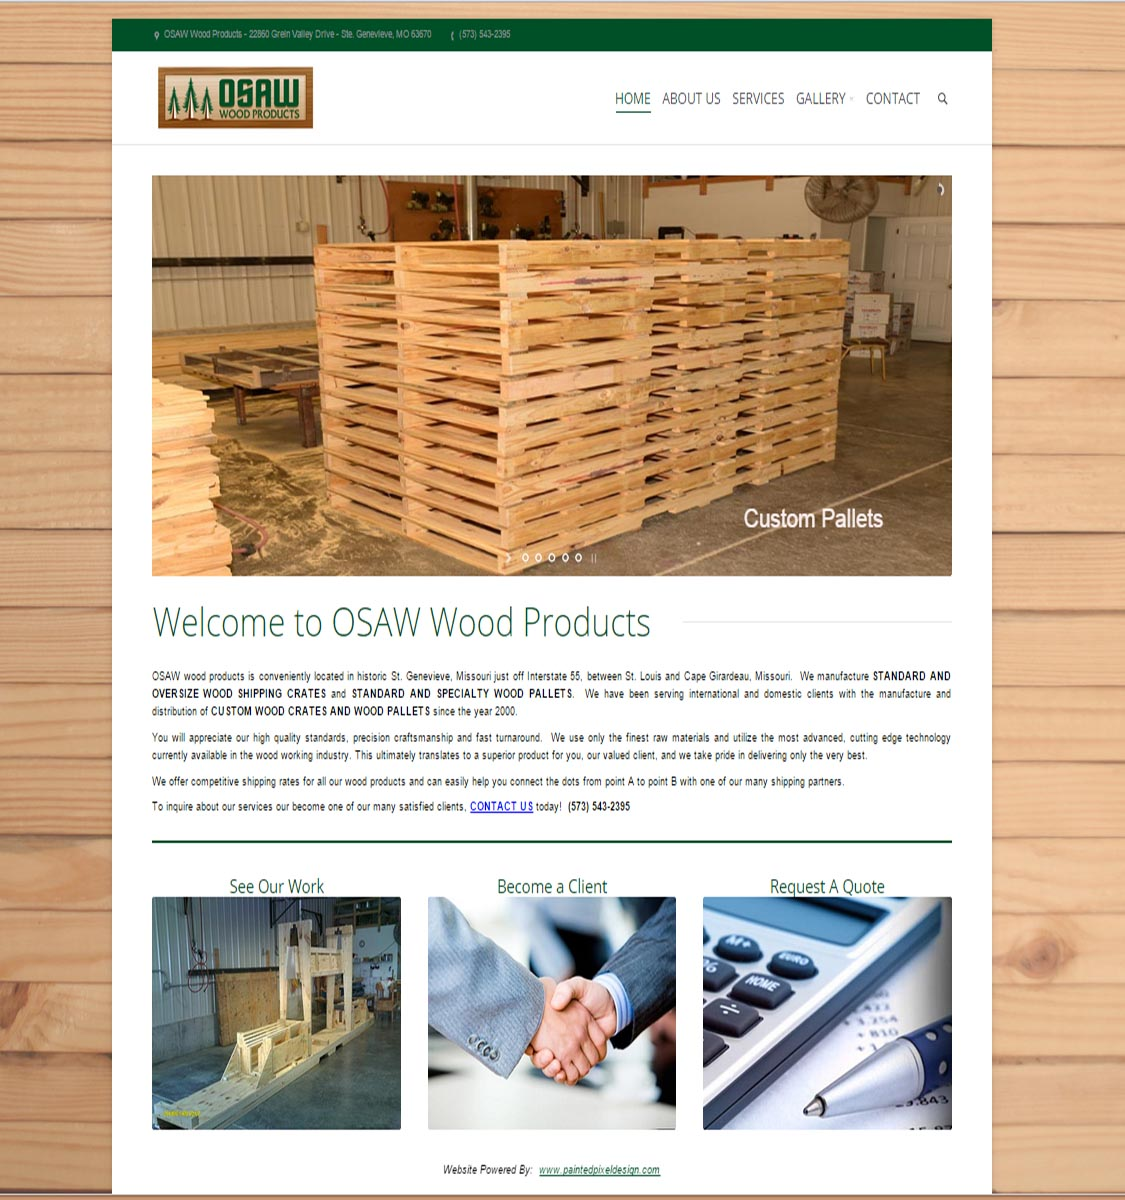 Painted Pixel Web Design - OSAW Wood Products Website